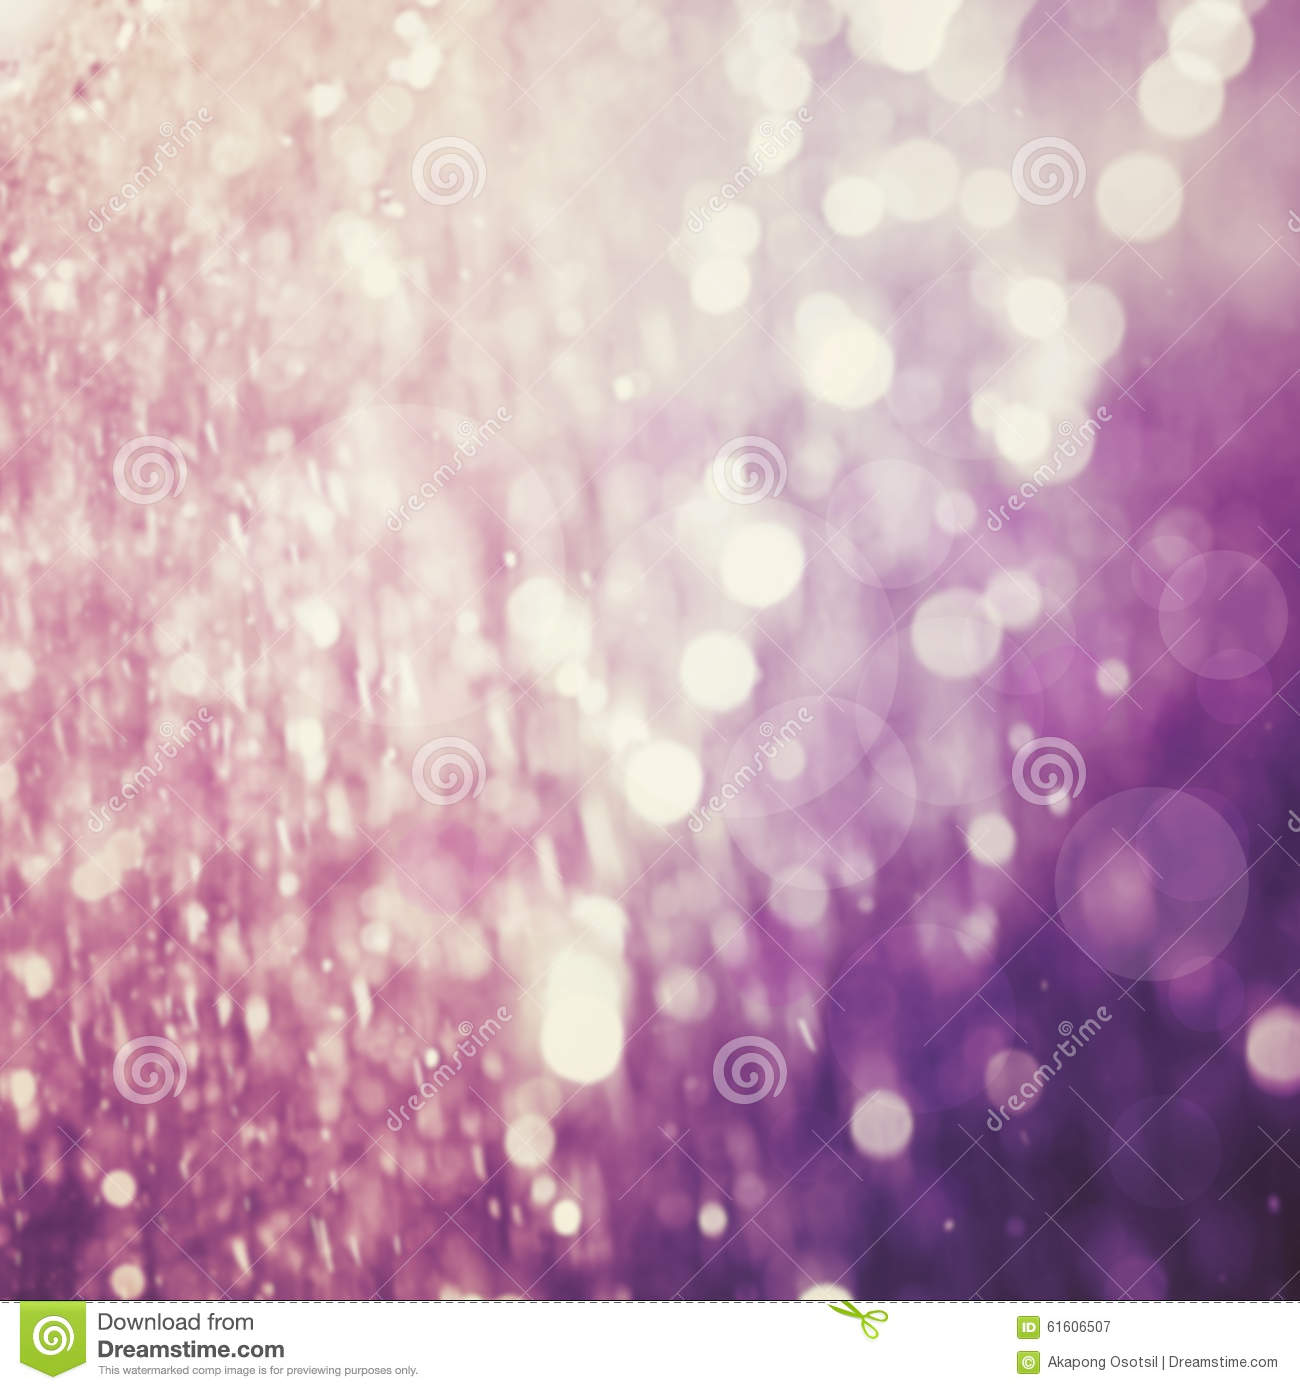 Abstract blur of purple color bokeh lighting as background